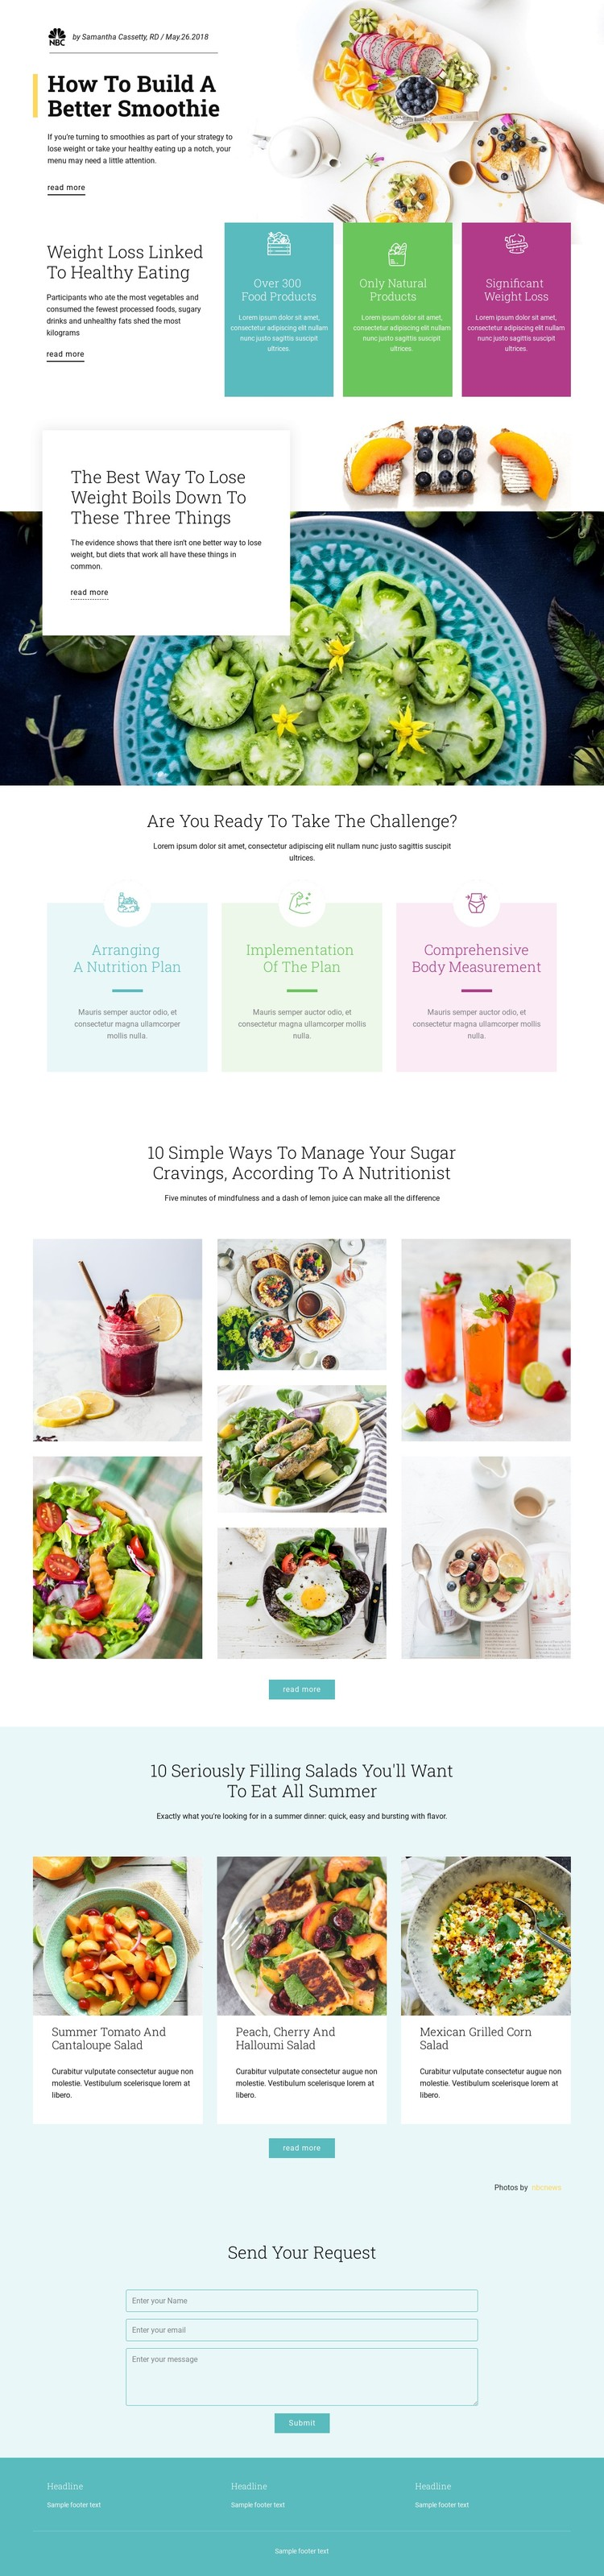 Smoothie Recipes Static Site Generator